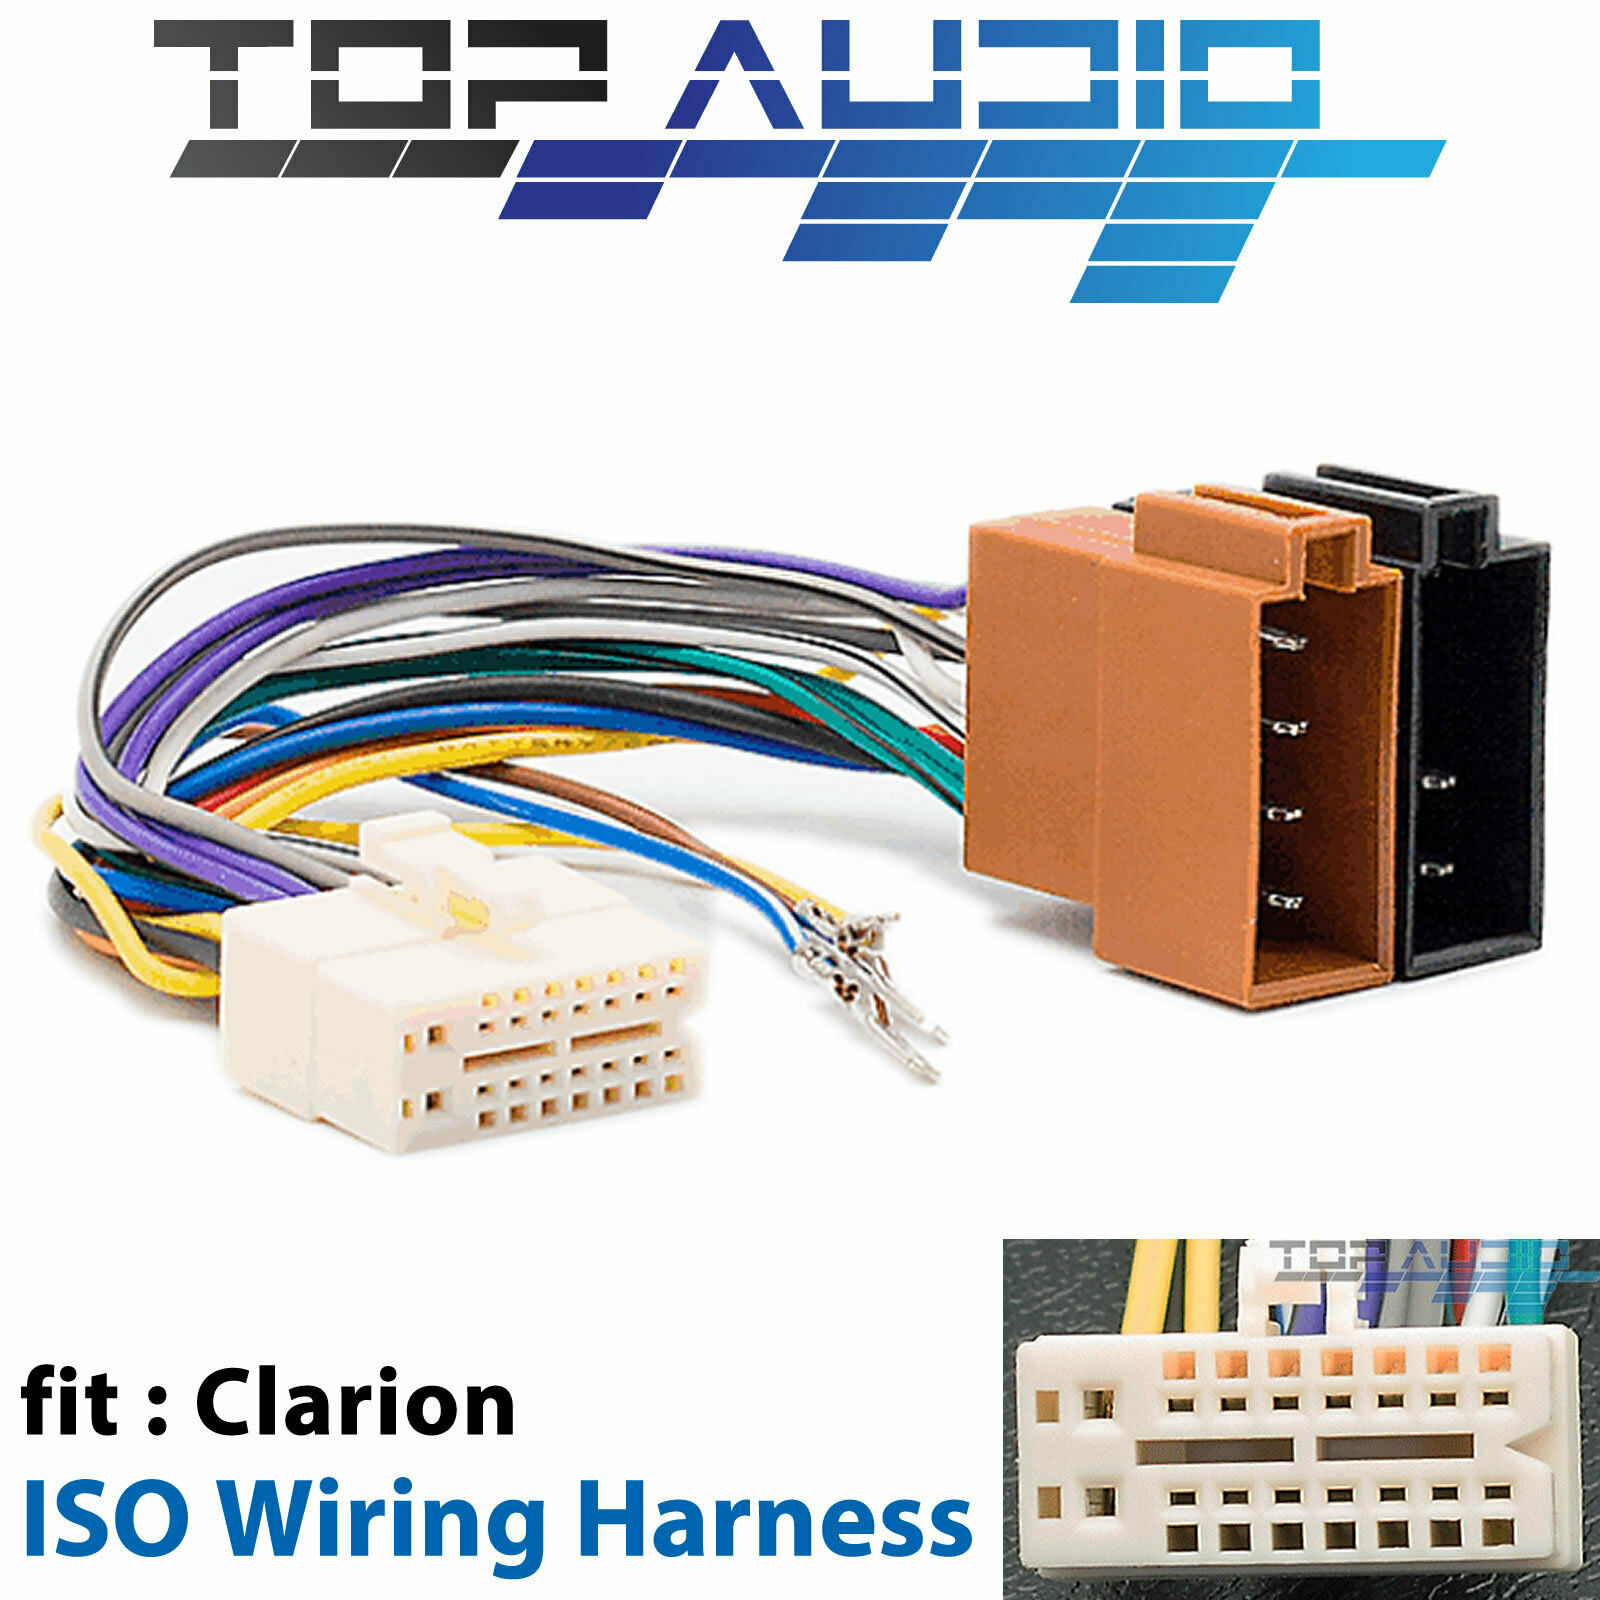 hight resolution of clarion cx305au iso wiring harness cable connector adaptor lead loom wire plug for sale